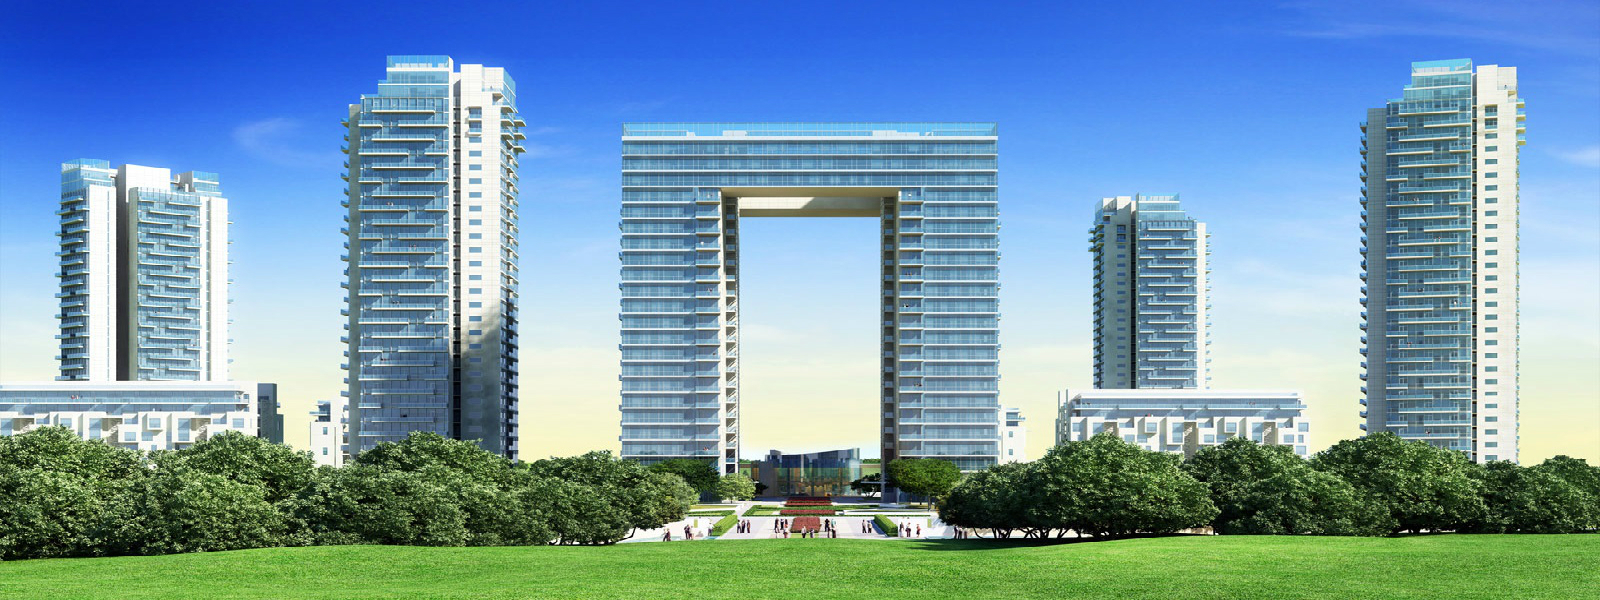 The Grand Arch Luxury Apartments